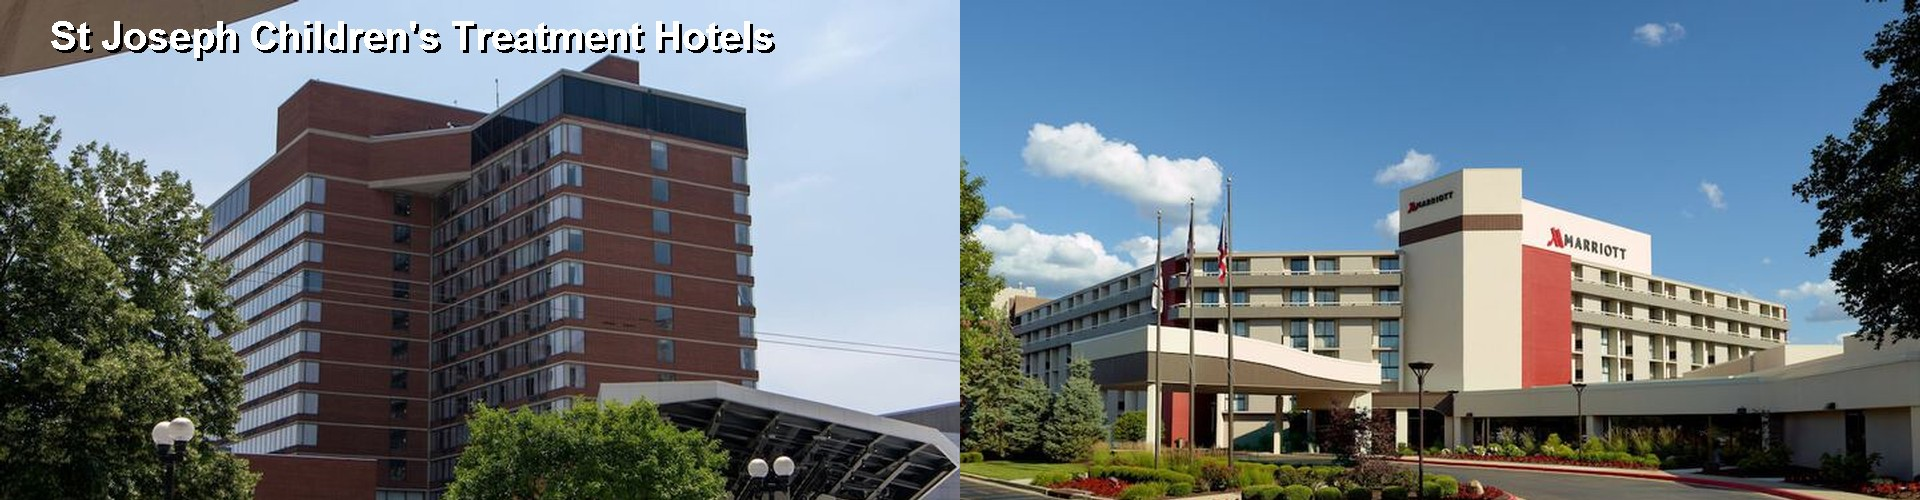 5 Best Hotels near St Joseph Children's Treatment